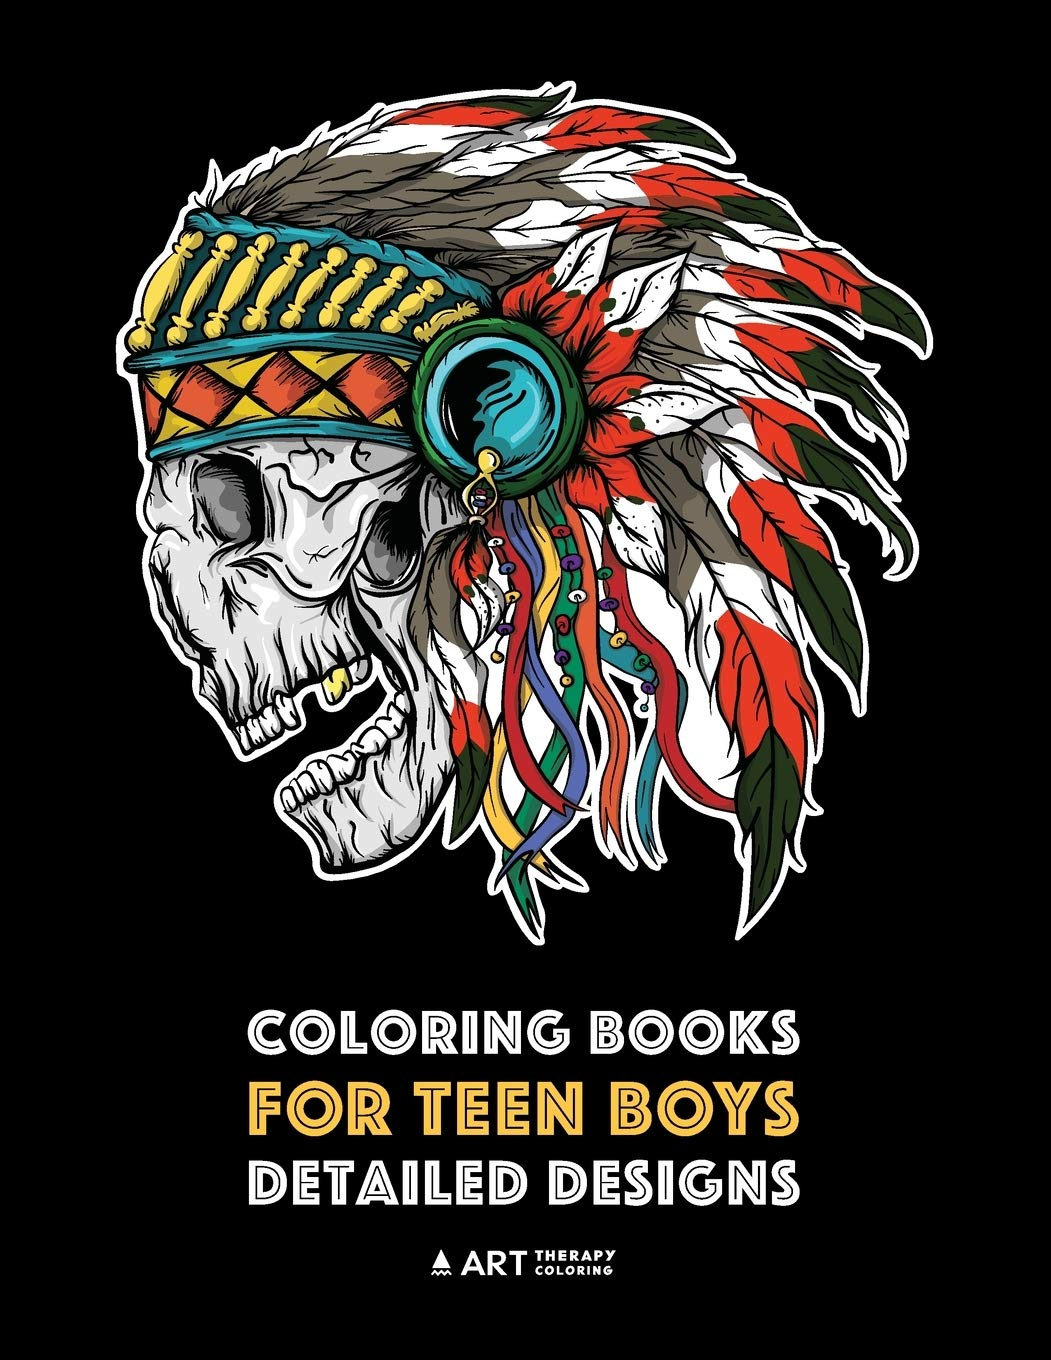 Coloring Books For Teen Boys Detailed Designs Complex Drawings For Teenagers Older Boys Zendoodle Lions Tigers Dragons Snakes Skulls Geometric Patterns Art Therapy Coloring 9781641260312 Amazon Com Books